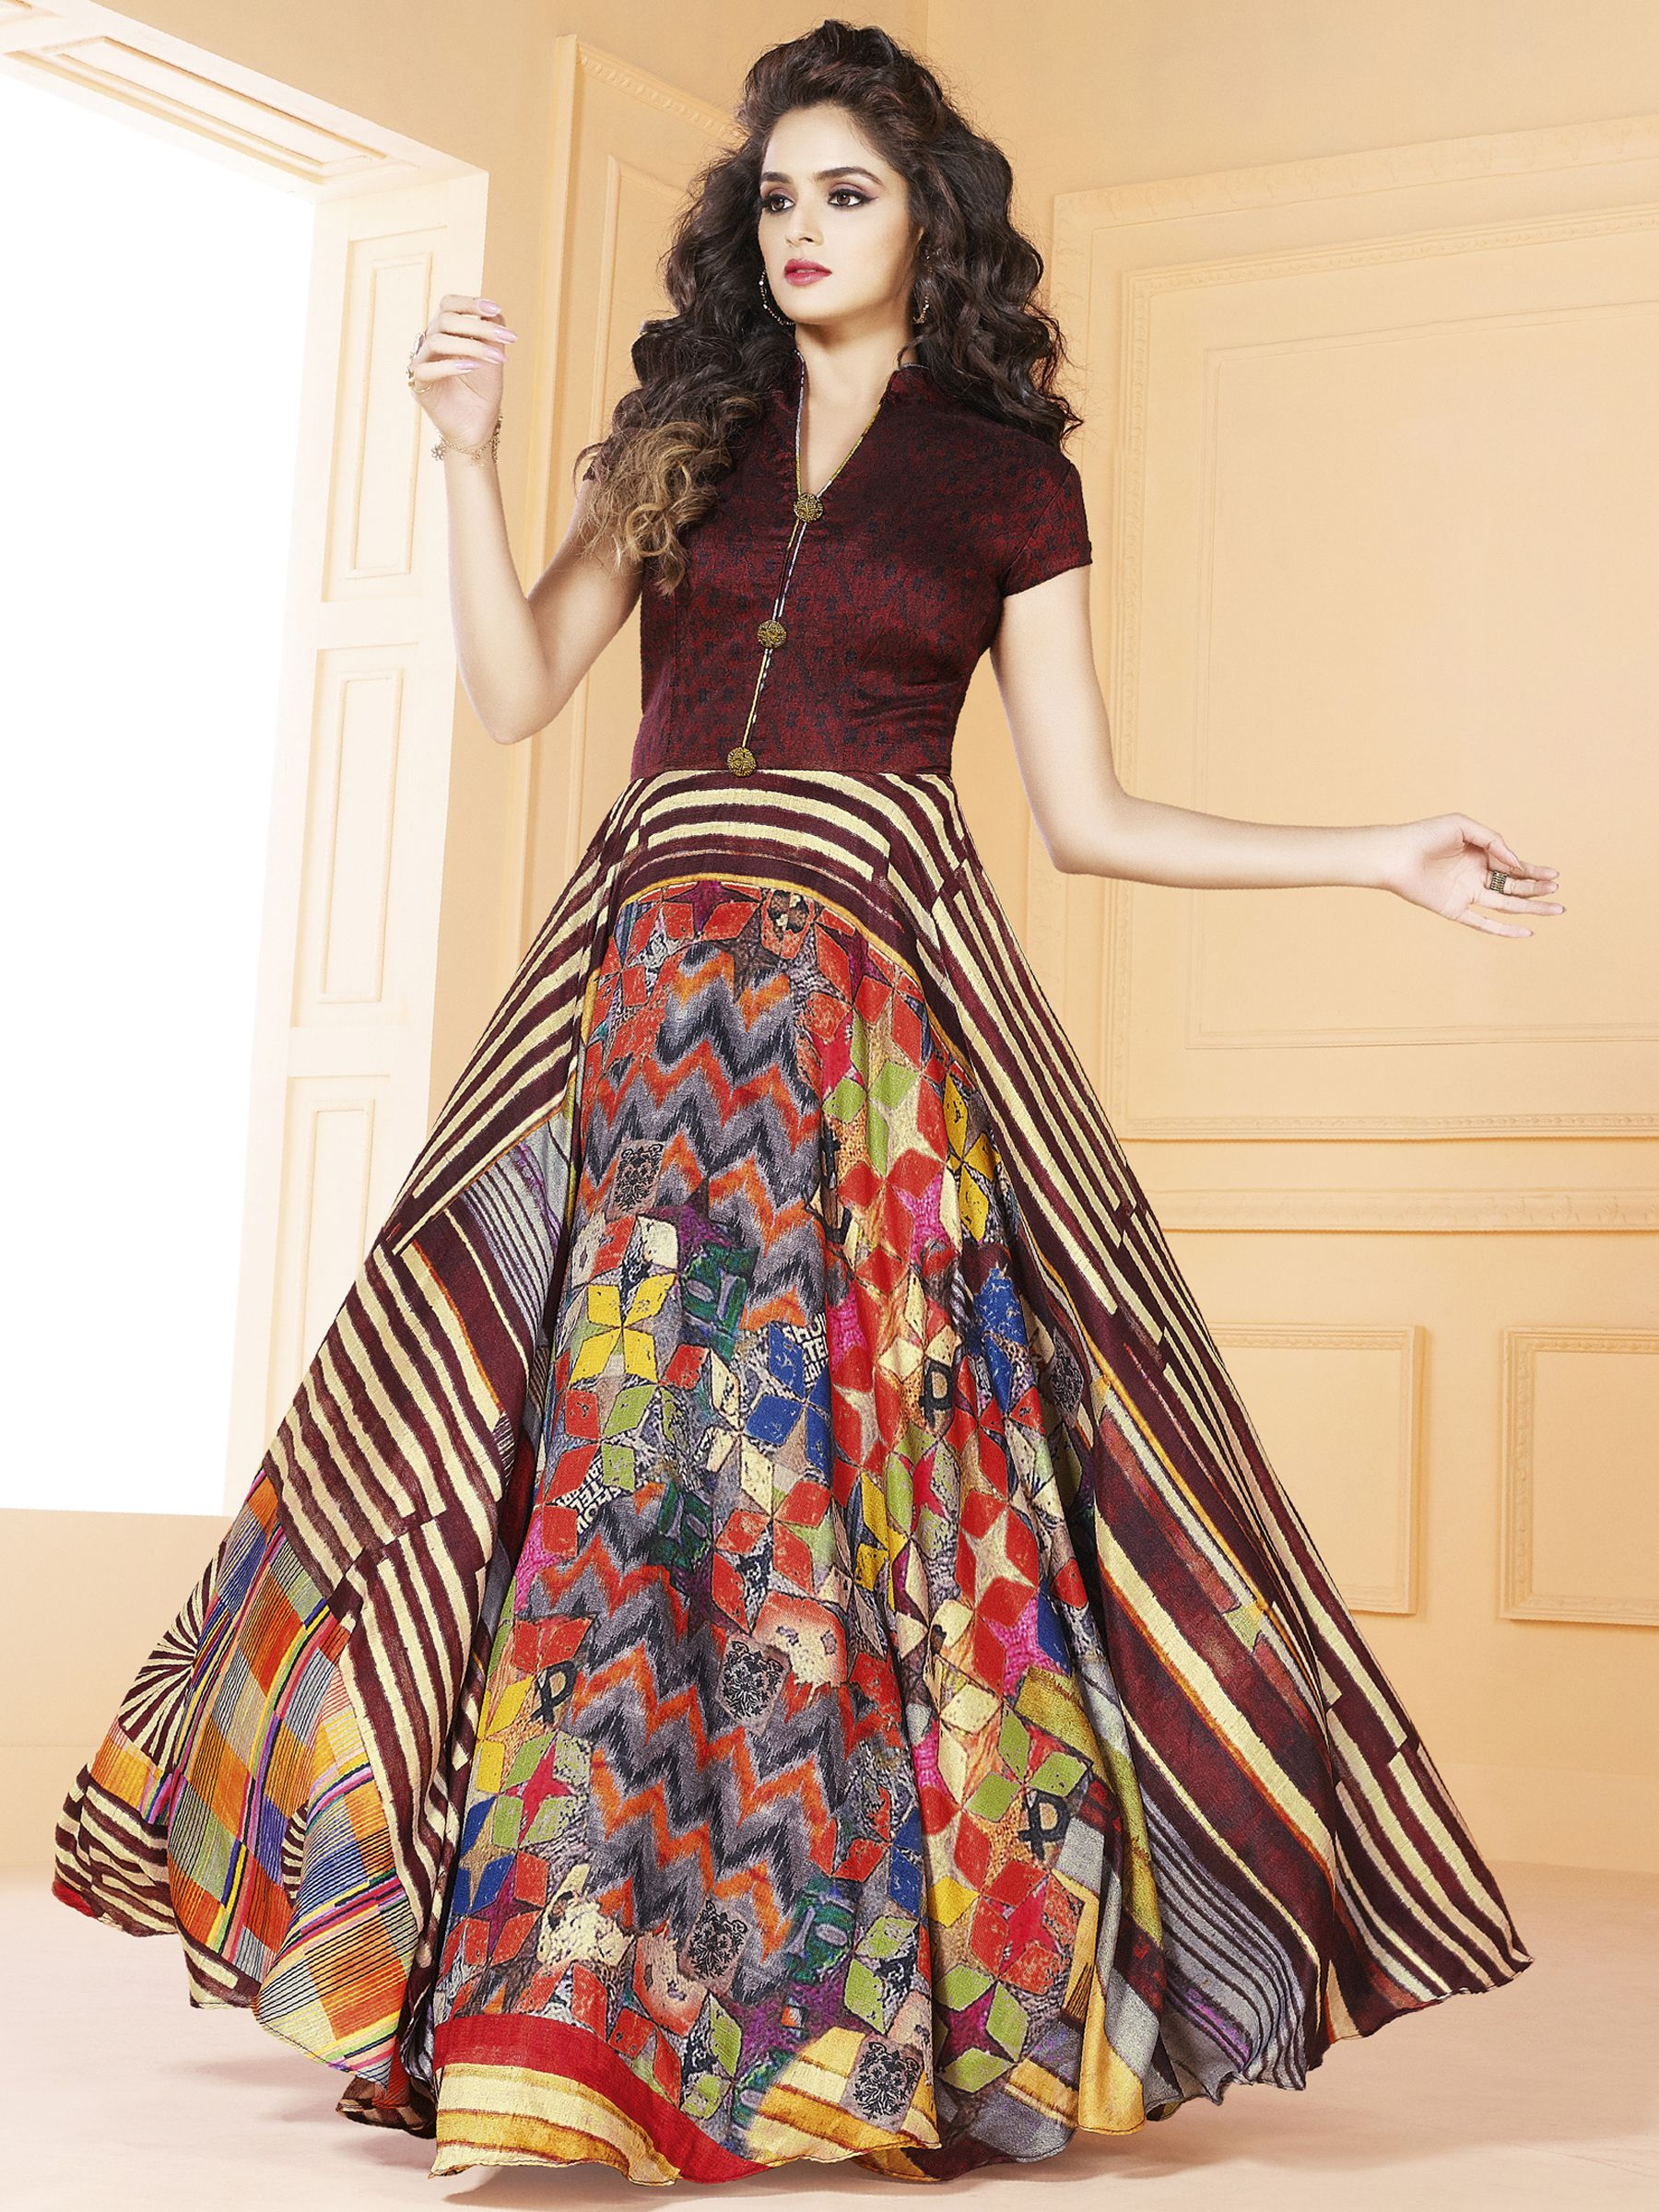 Pin by umesh j on photo pinterest gowns dresses and printed gowns